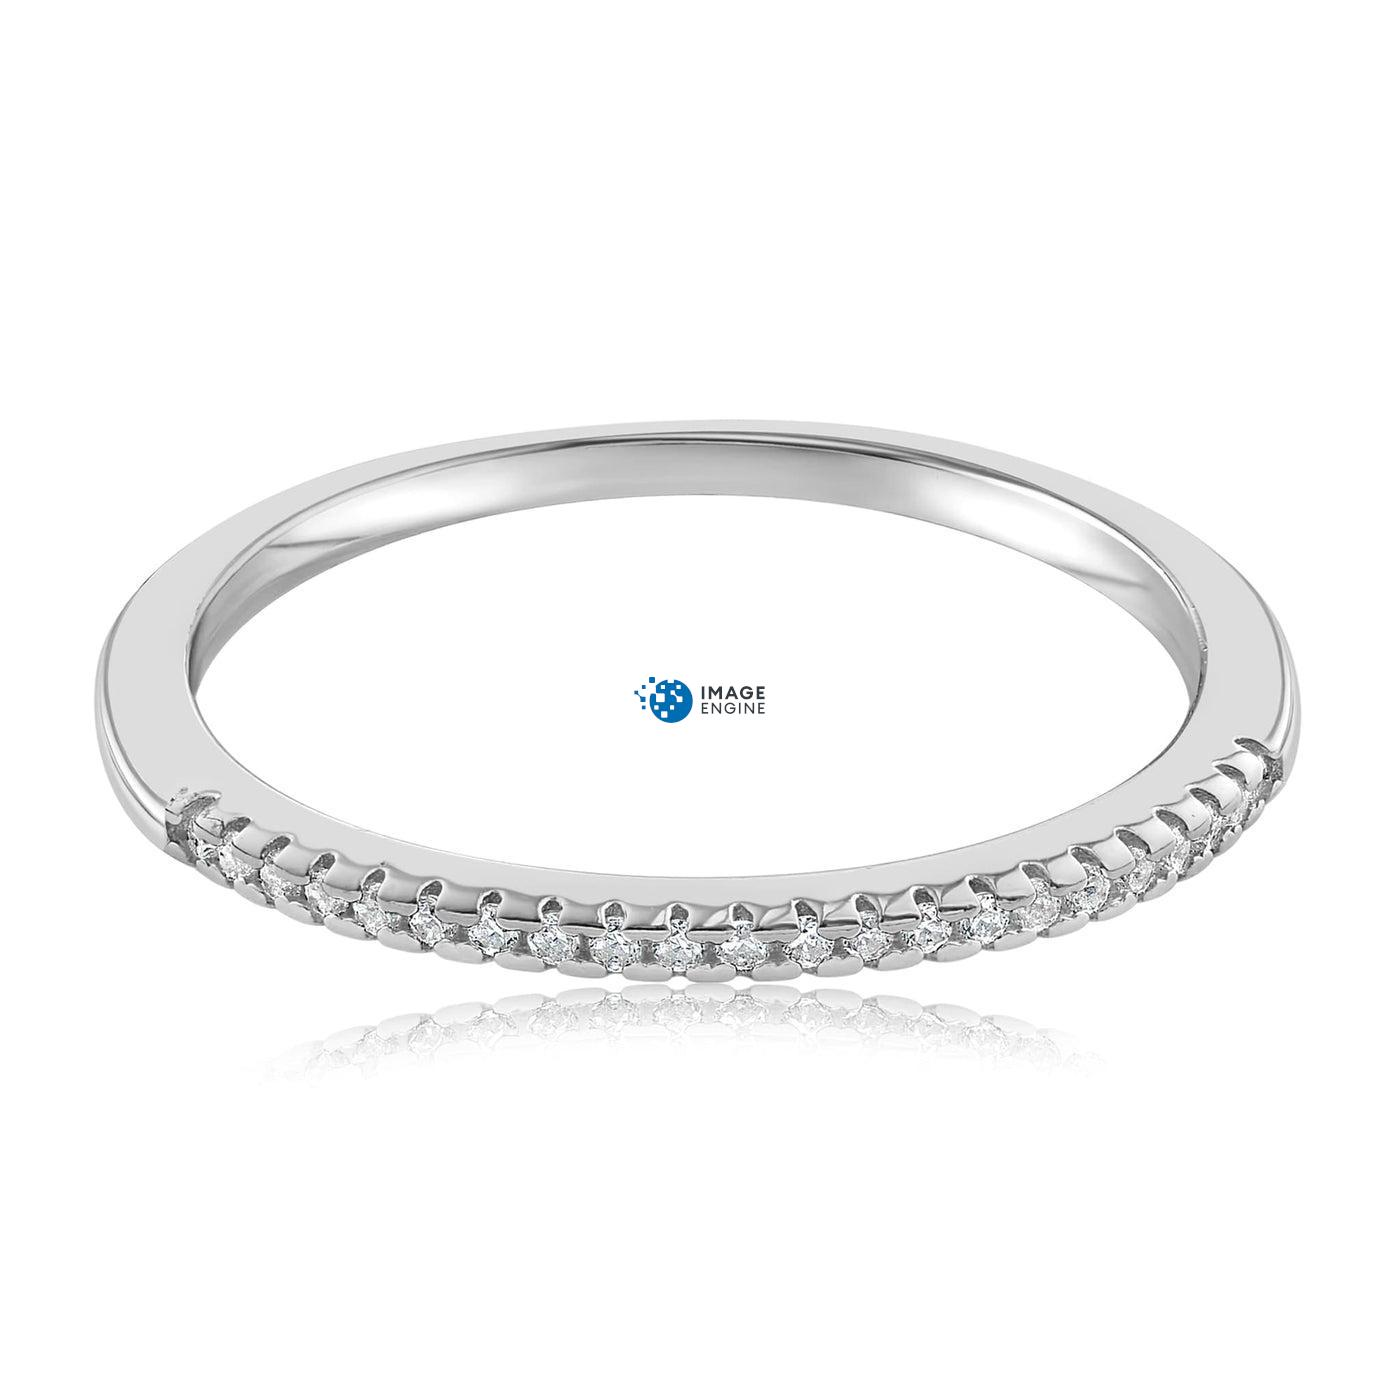 Brianna Bezel Ring - Front View Facing Down - 925 Sterling Silver